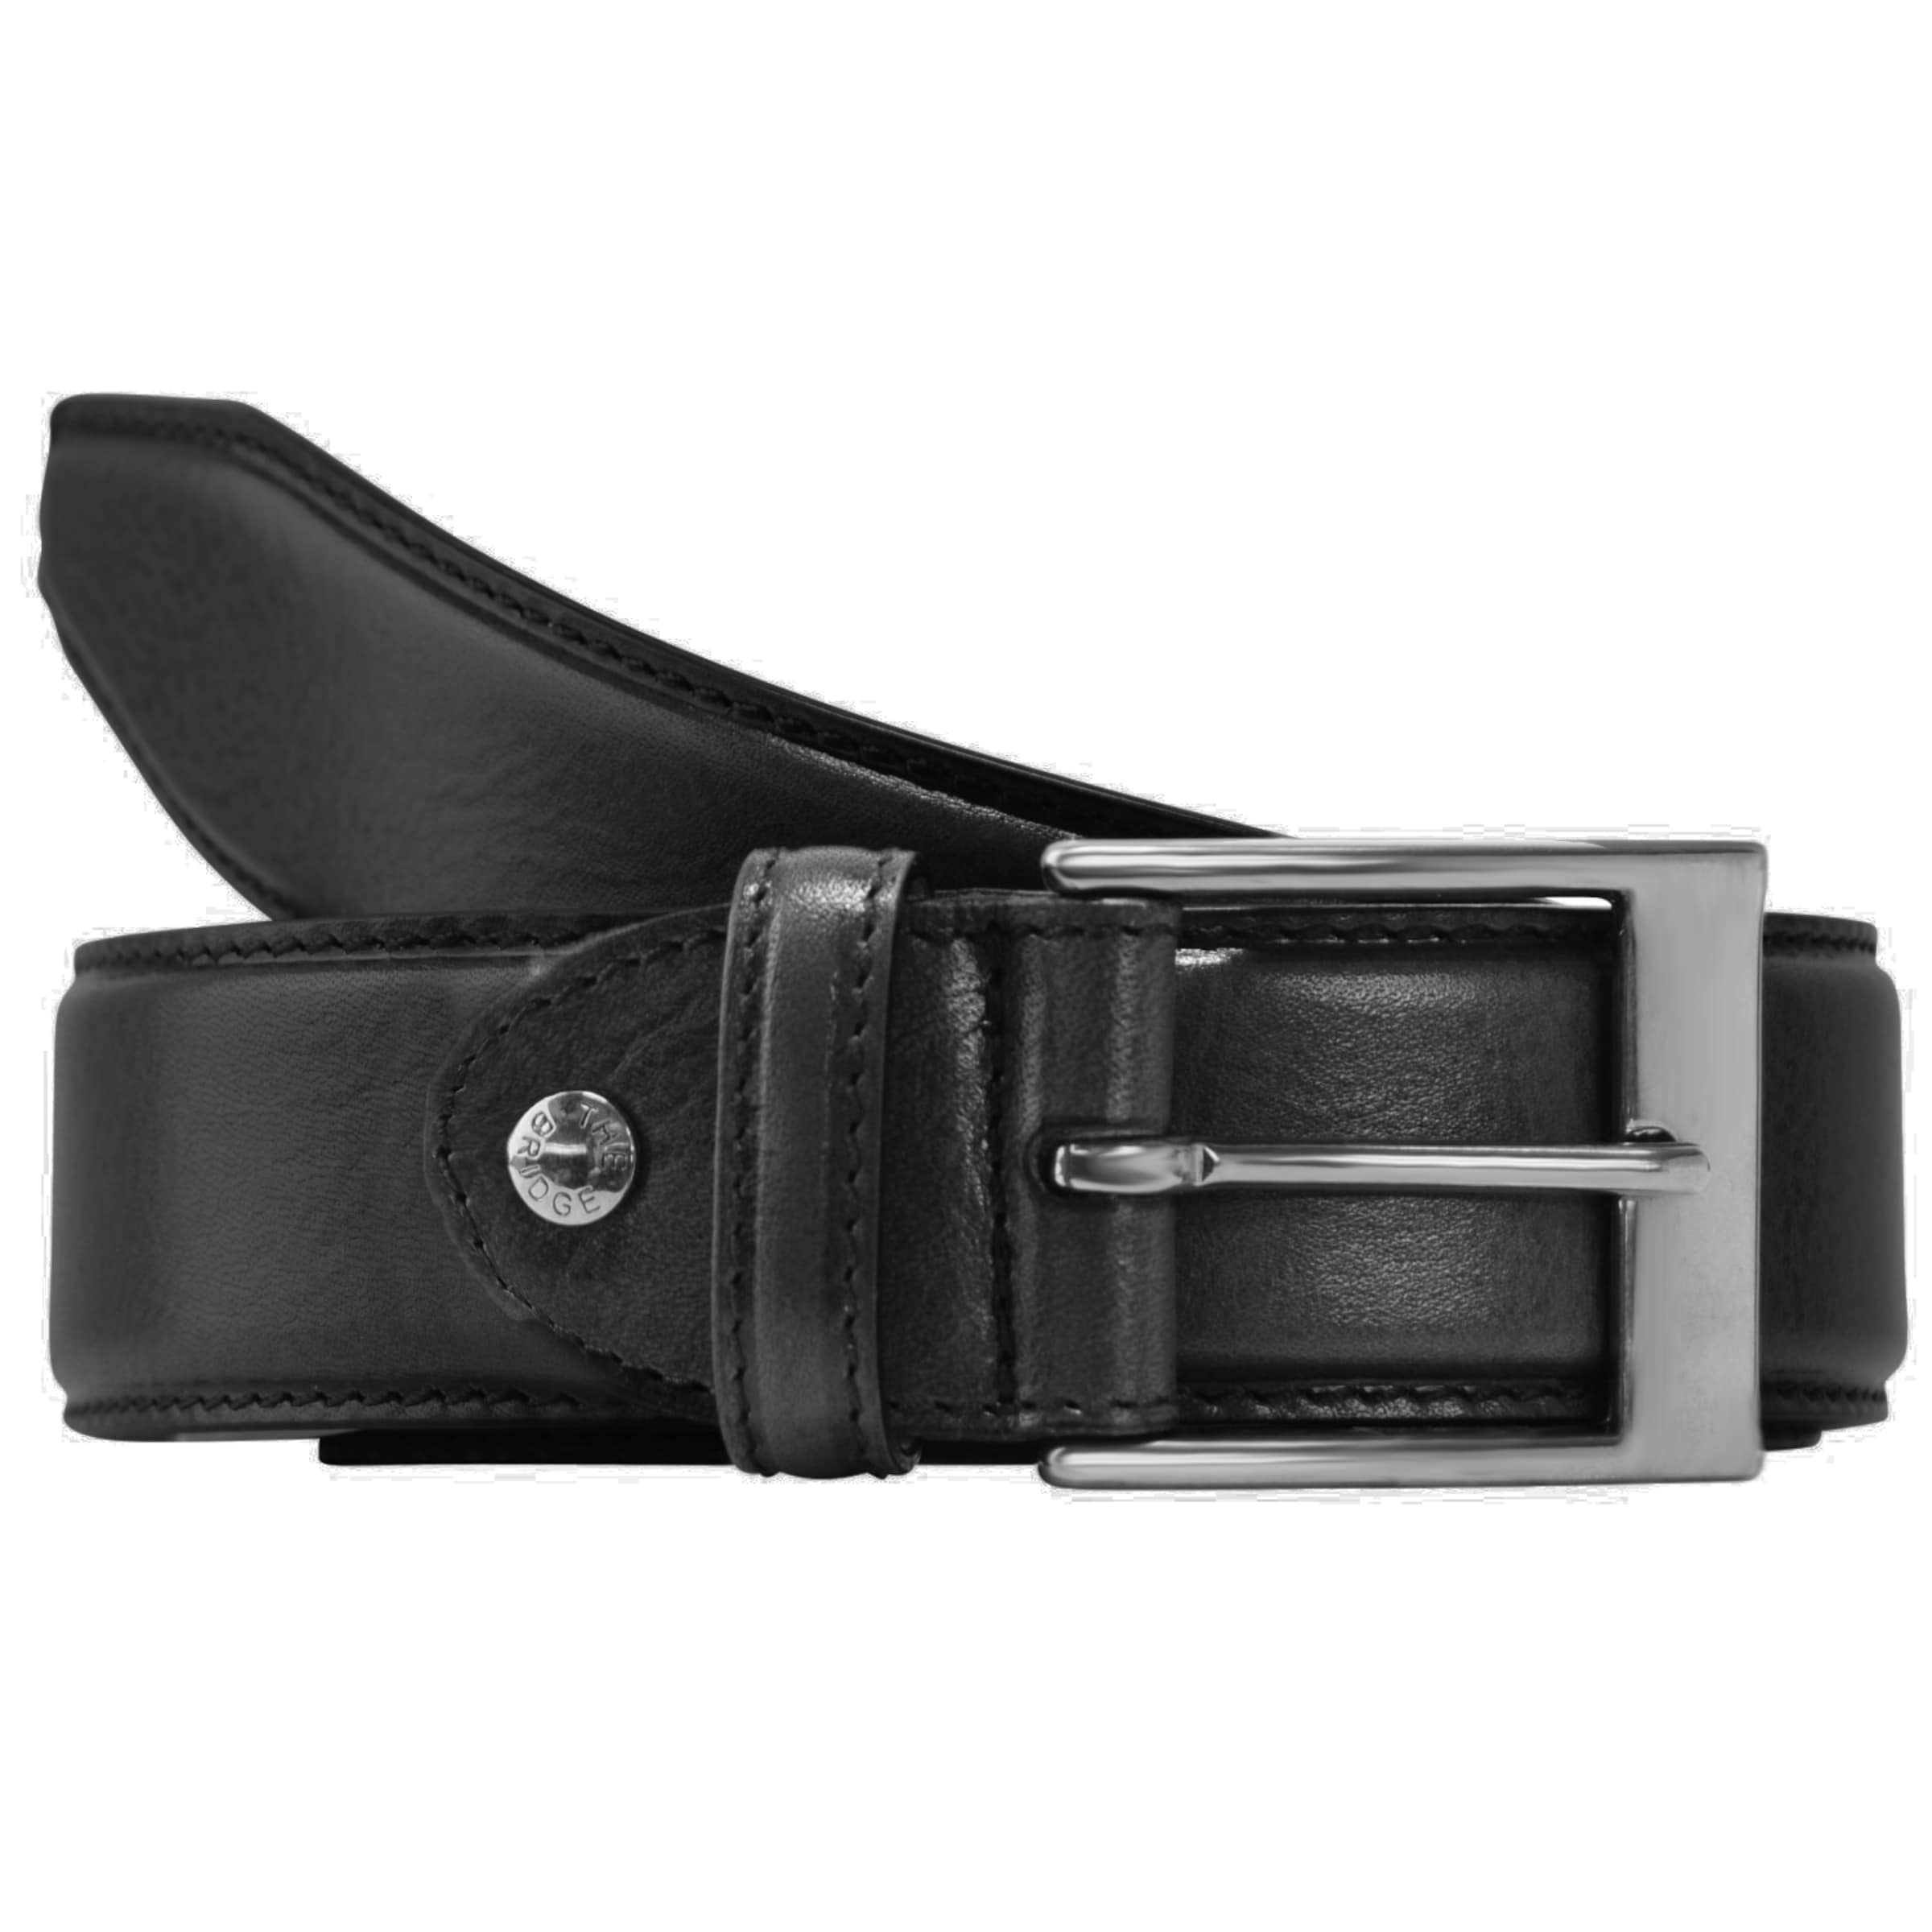 Schwarz Leder In Uomo Story Gürtel 135 The Bridge Cm 54AR3jL